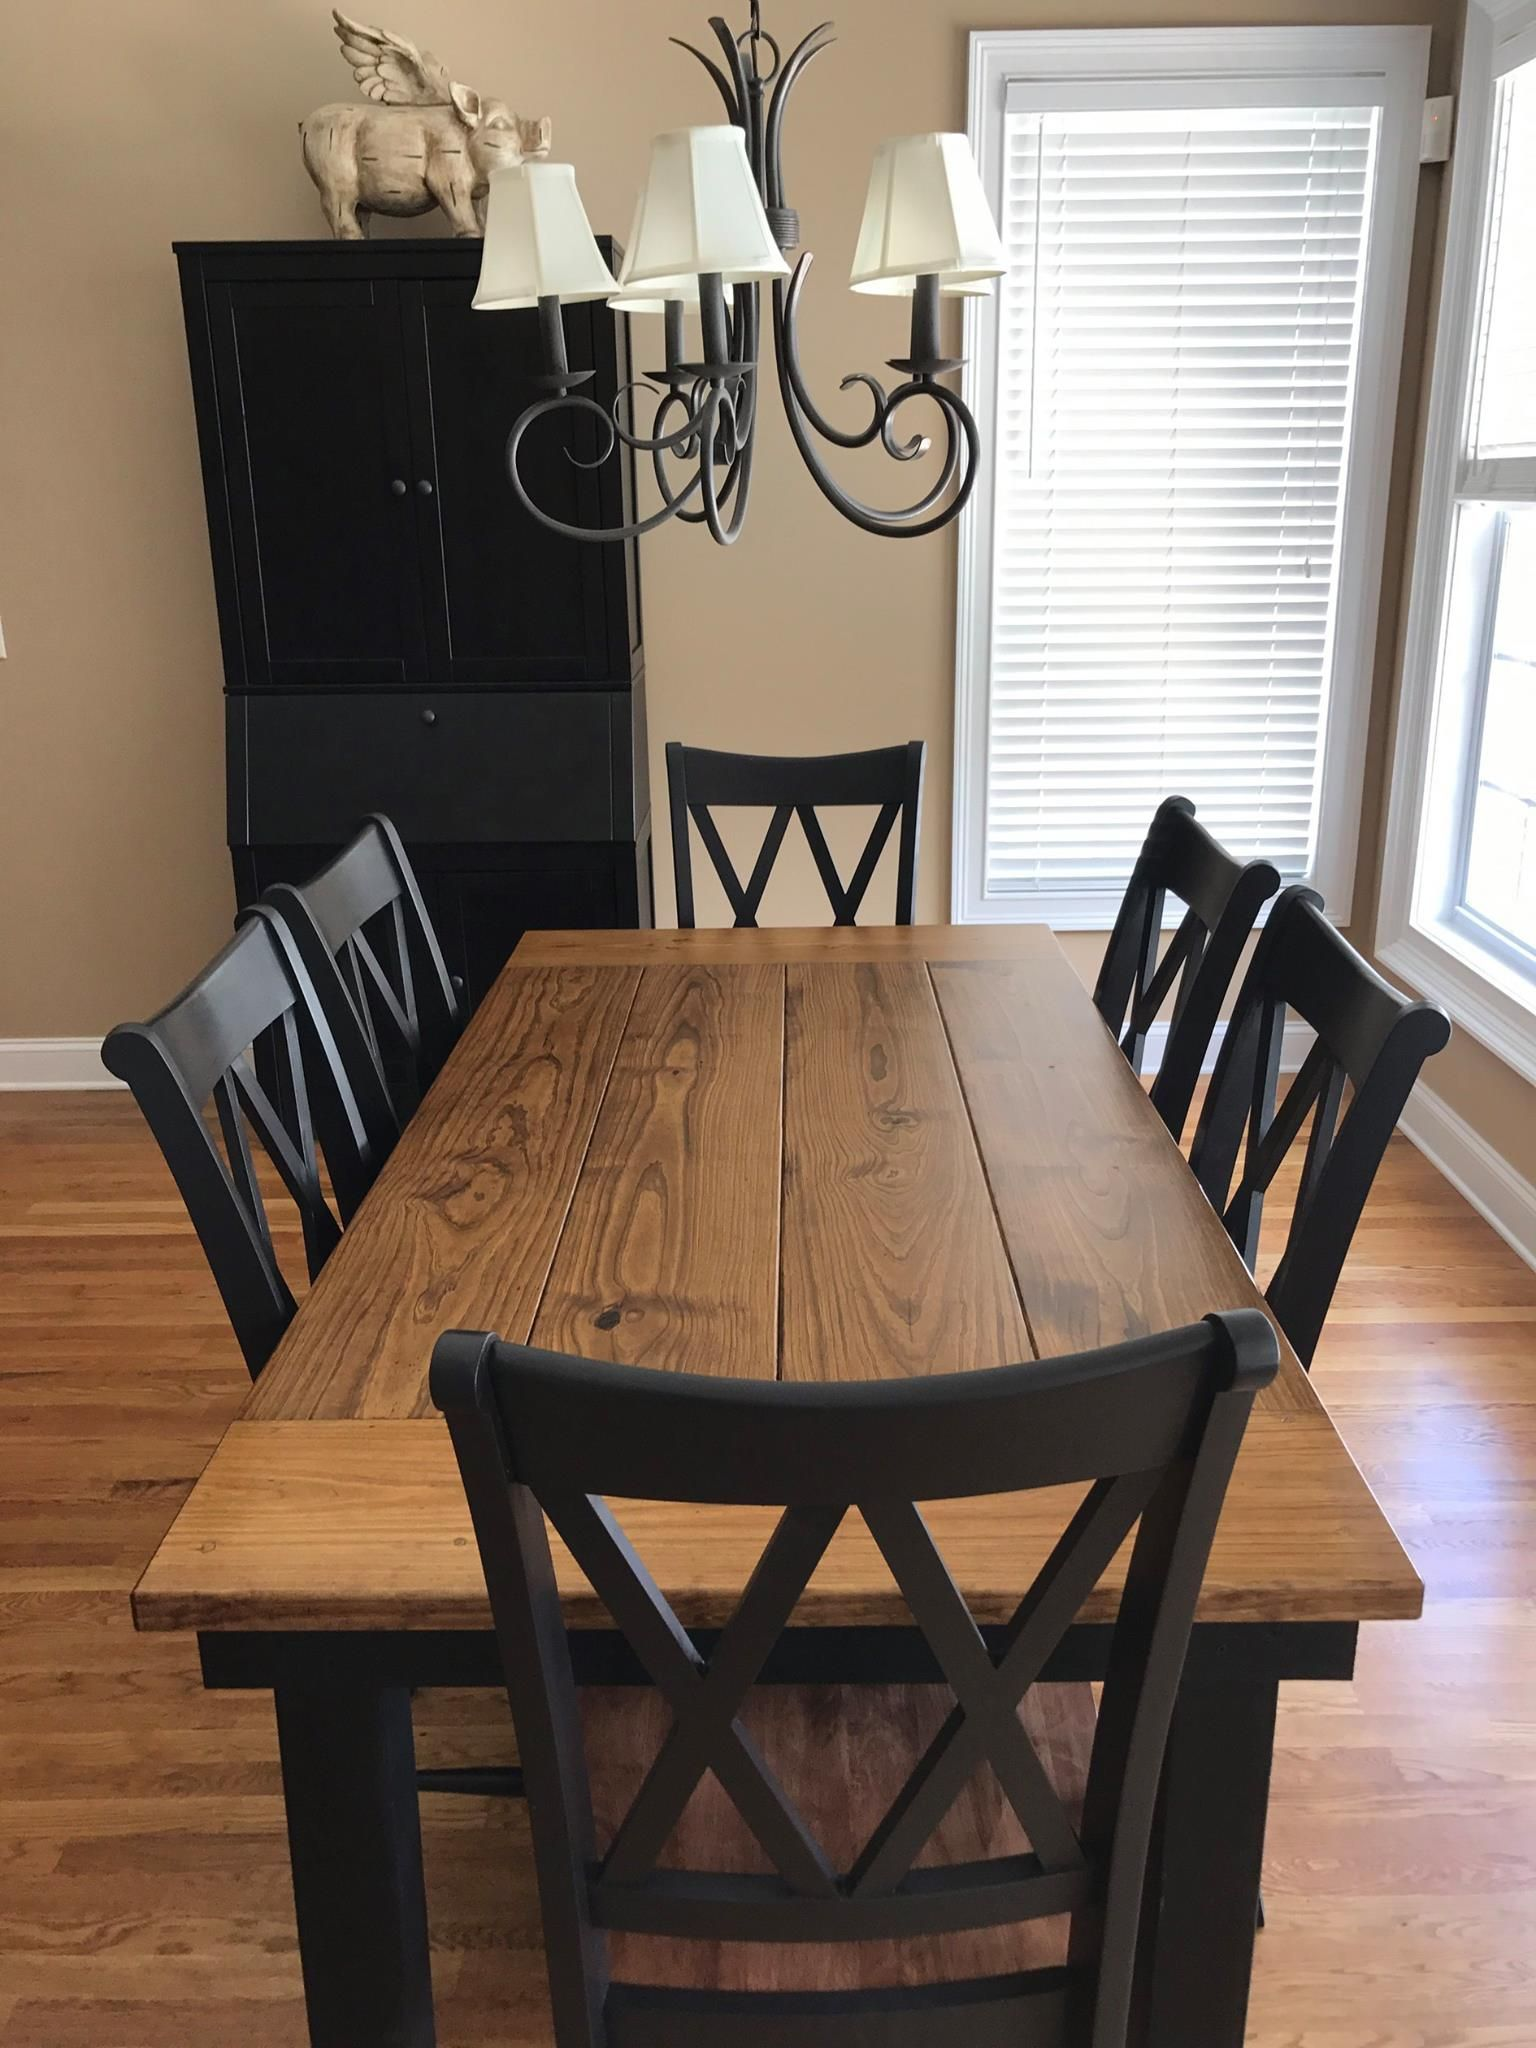 James X Farmhouse Dining Table With An Early American Stained Top Featuring Endcaps And A Black Painted Base Pictured Double Back